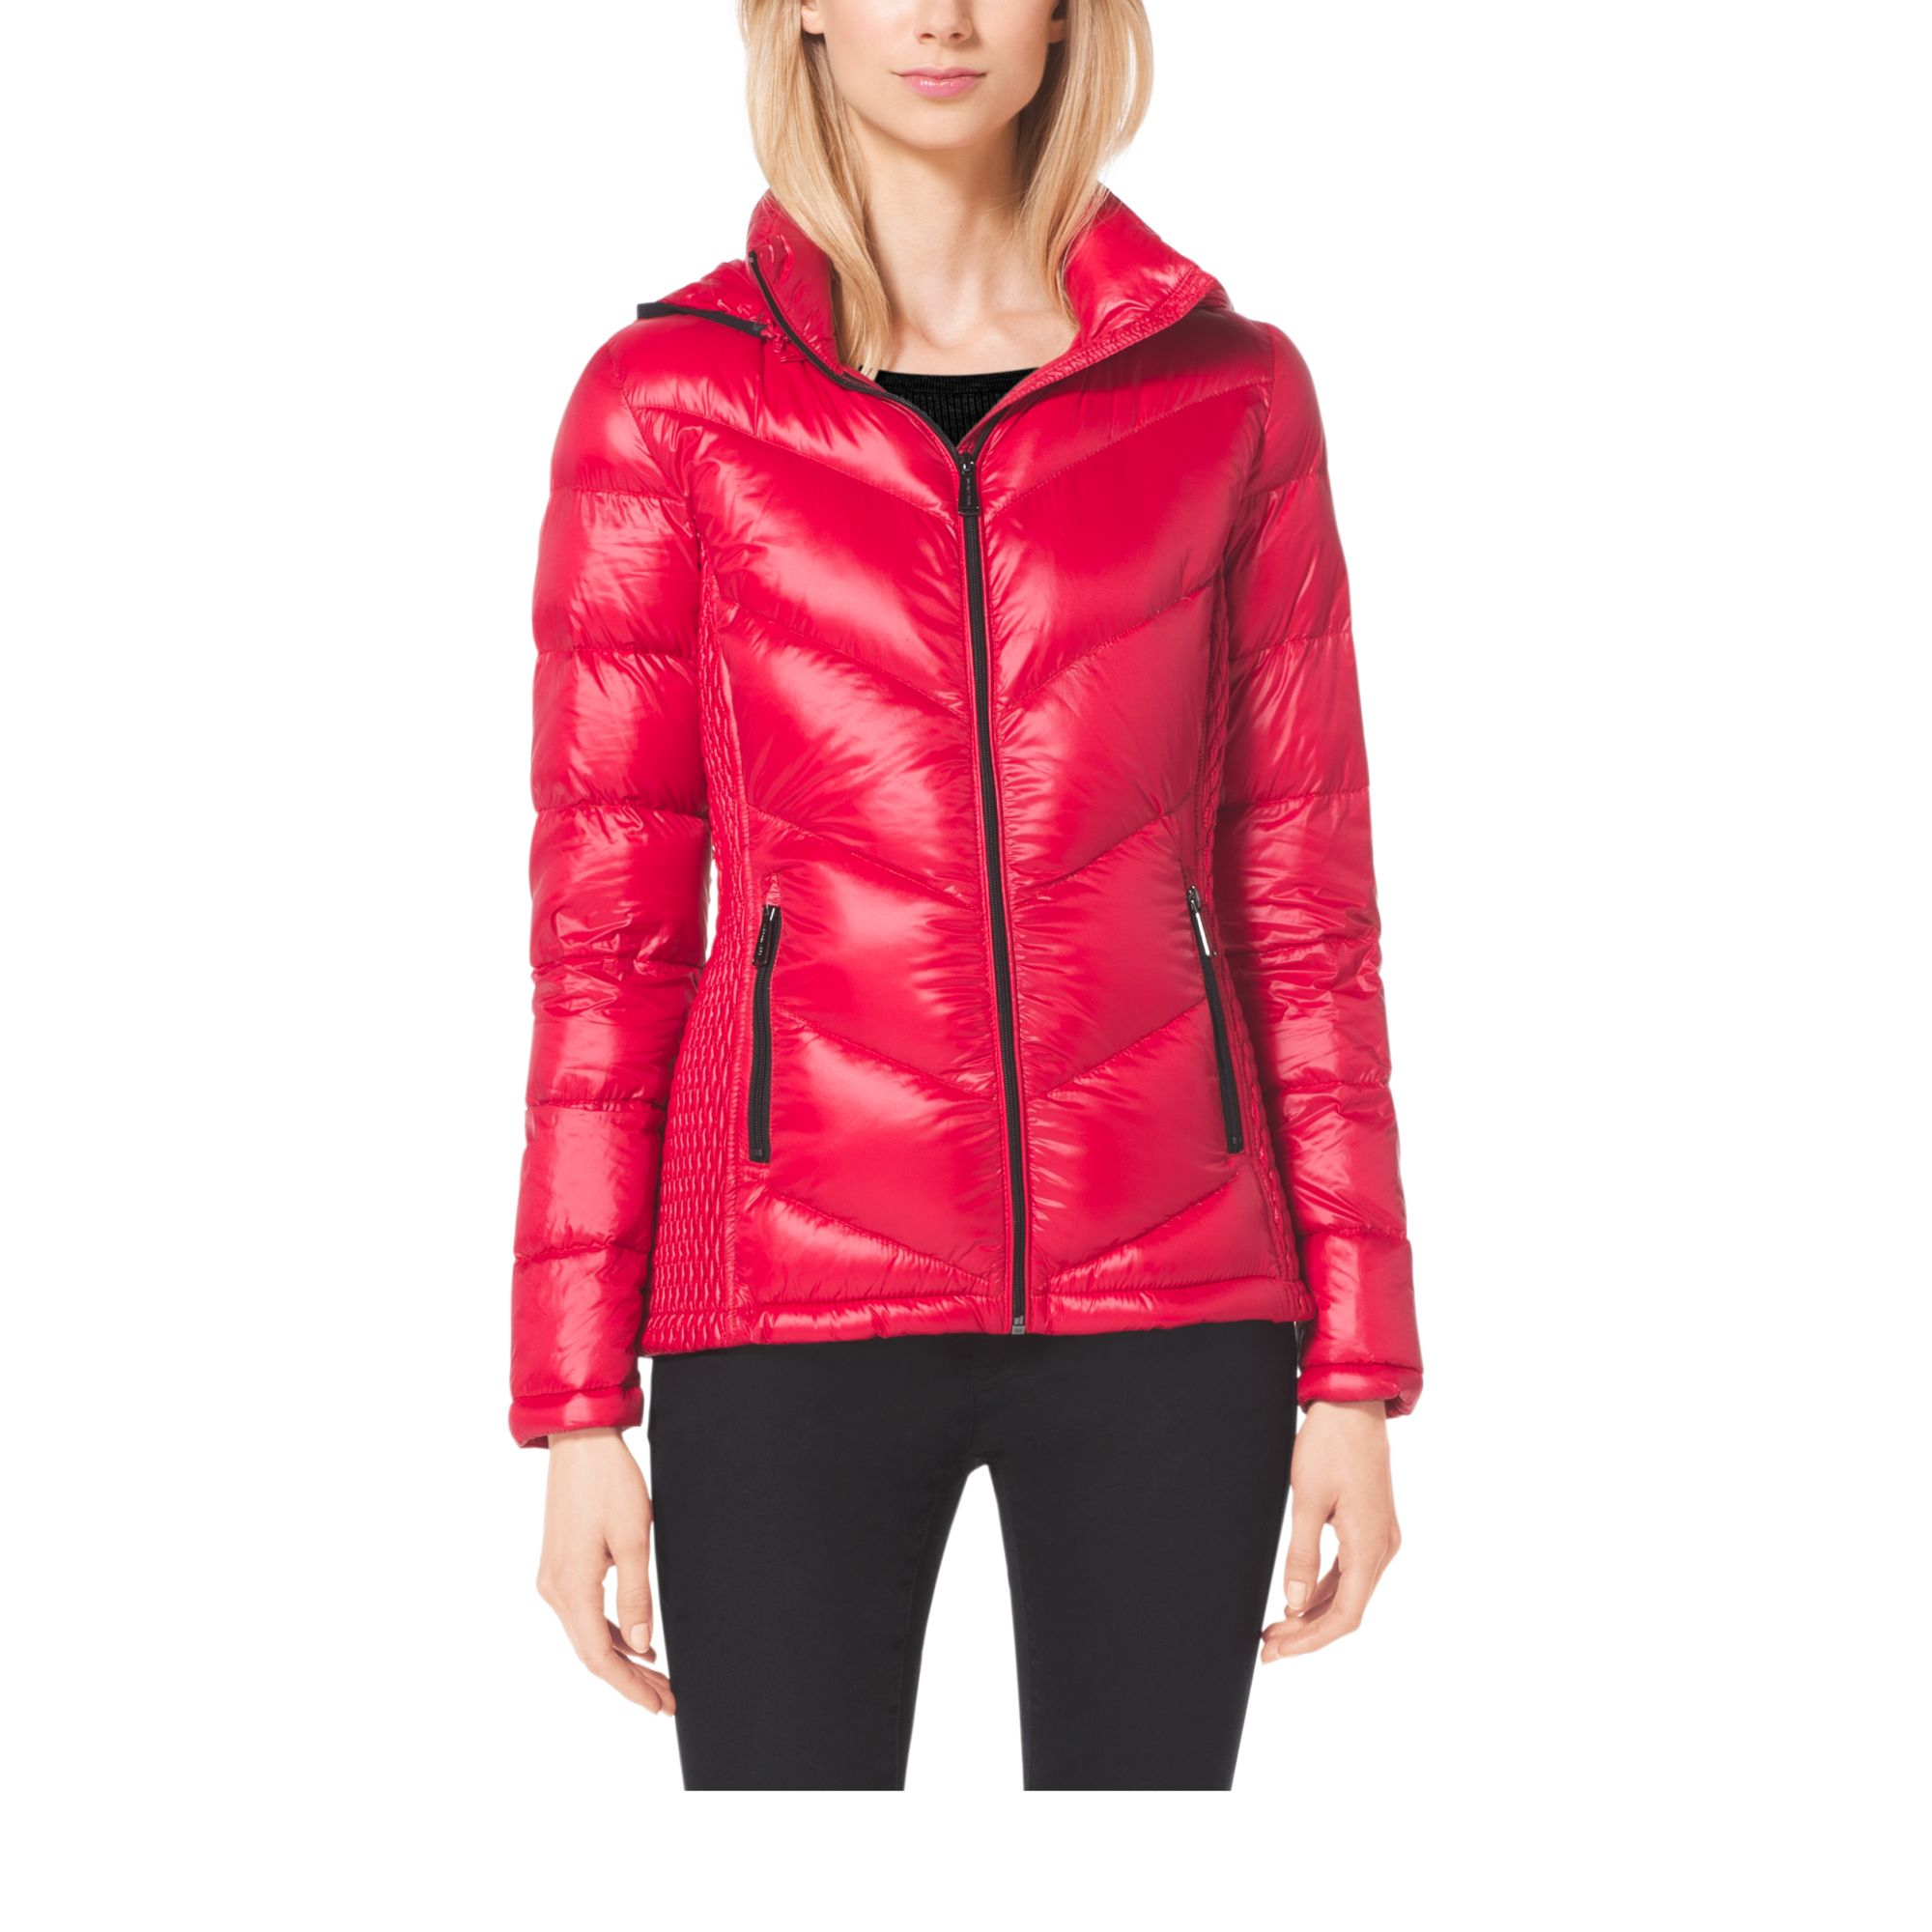 michael kors quilted nylon jacket in red lyst. Black Bedroom Furniture Sets. Home Design Ideas